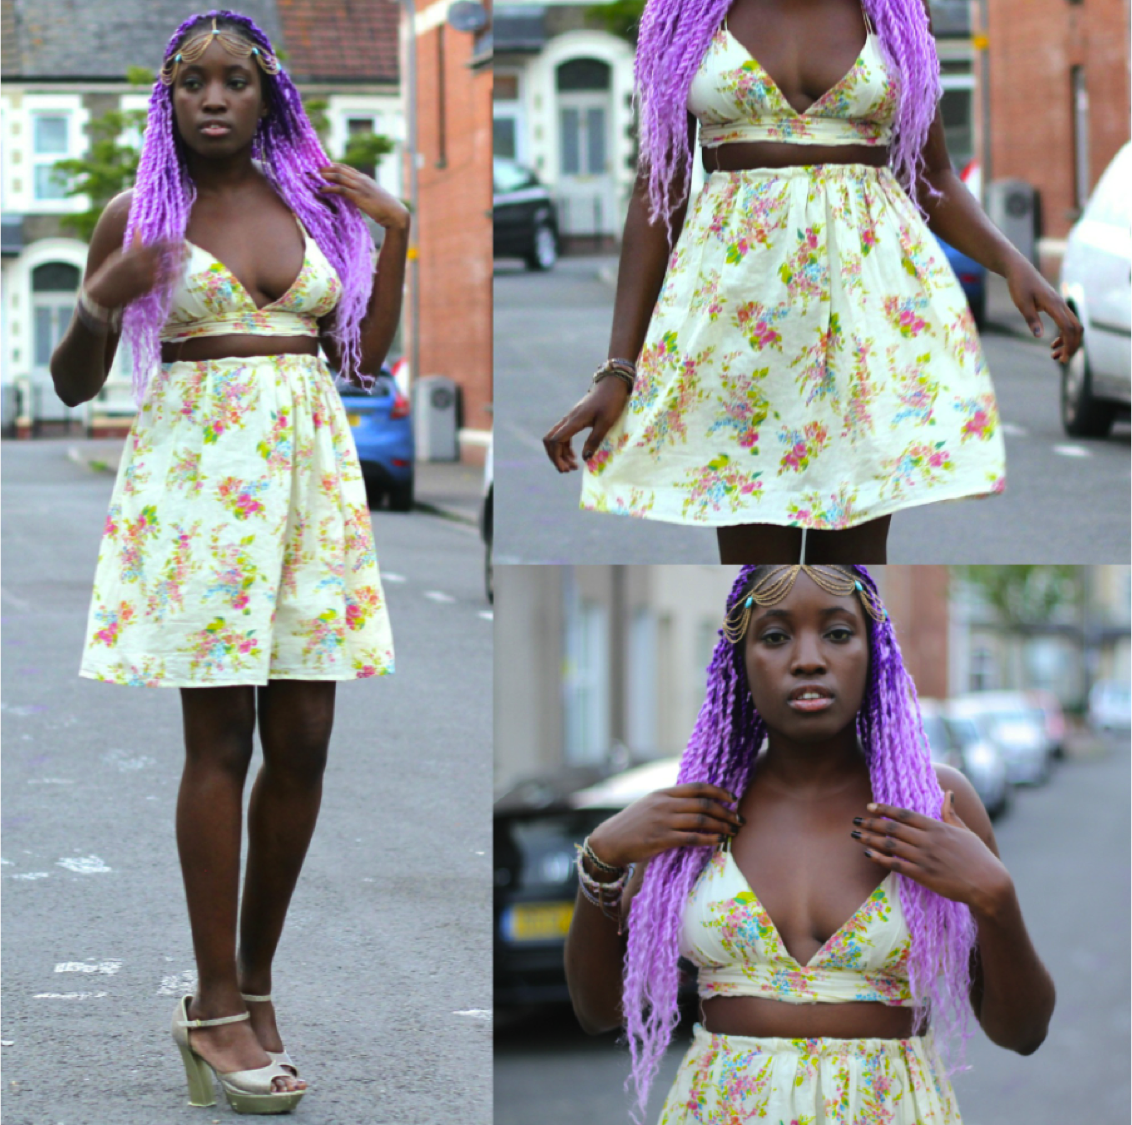 Vanessa from The Fashion Haven gives an old dress a modern twist by transforming it into this stunning two-piece! Full post: http://www.thefashionhaven.com/2014/07/diy-glorious-two-piece.html